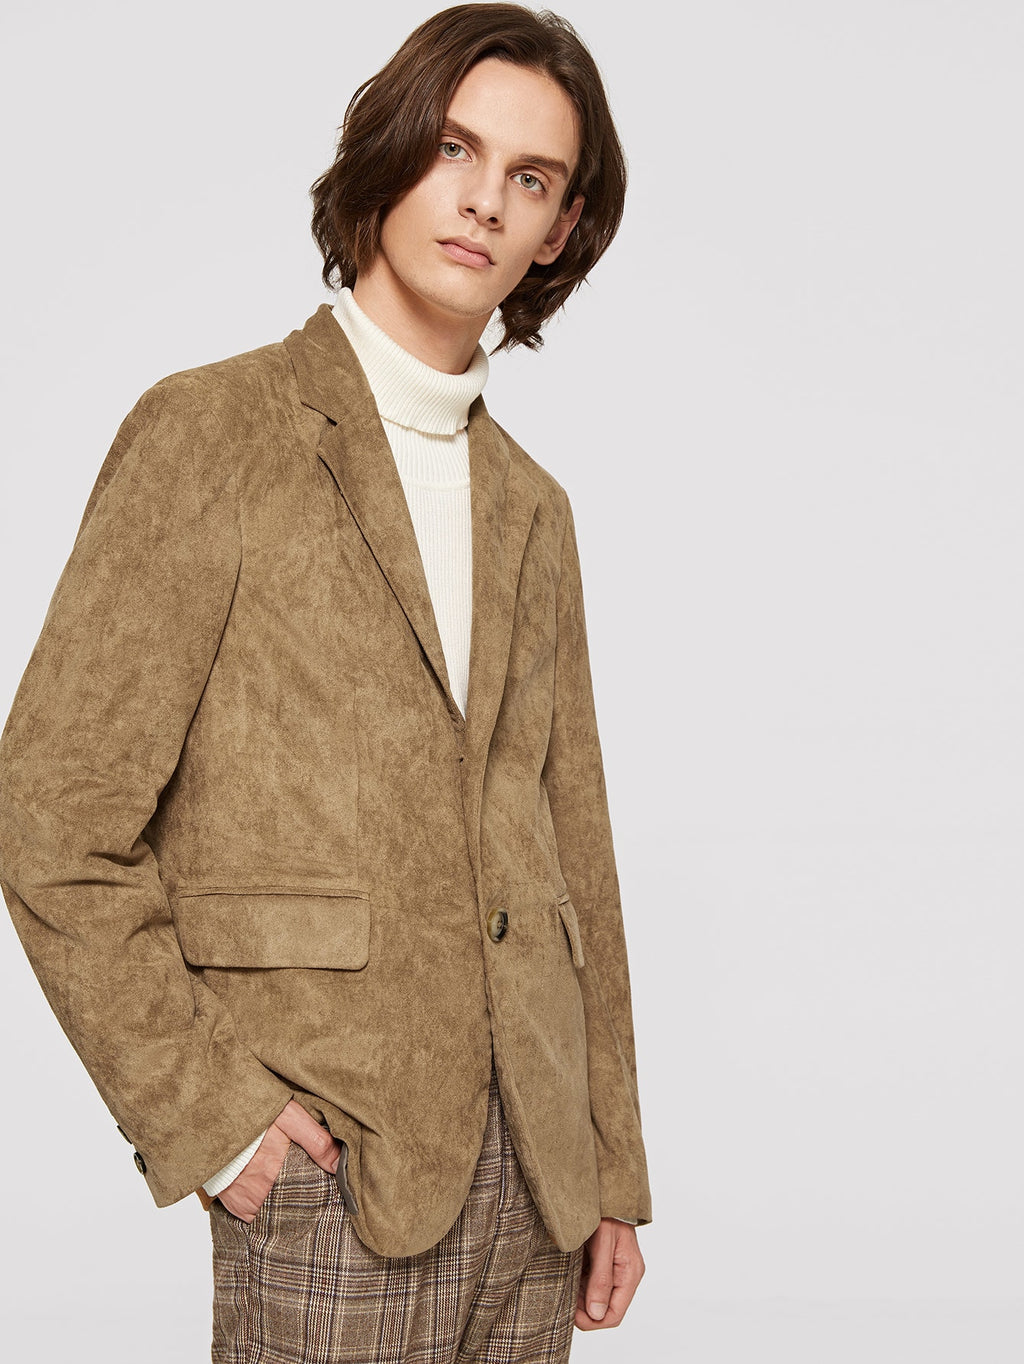 Men's Blazers - Notch Collar Single Breasted Suede Blazer